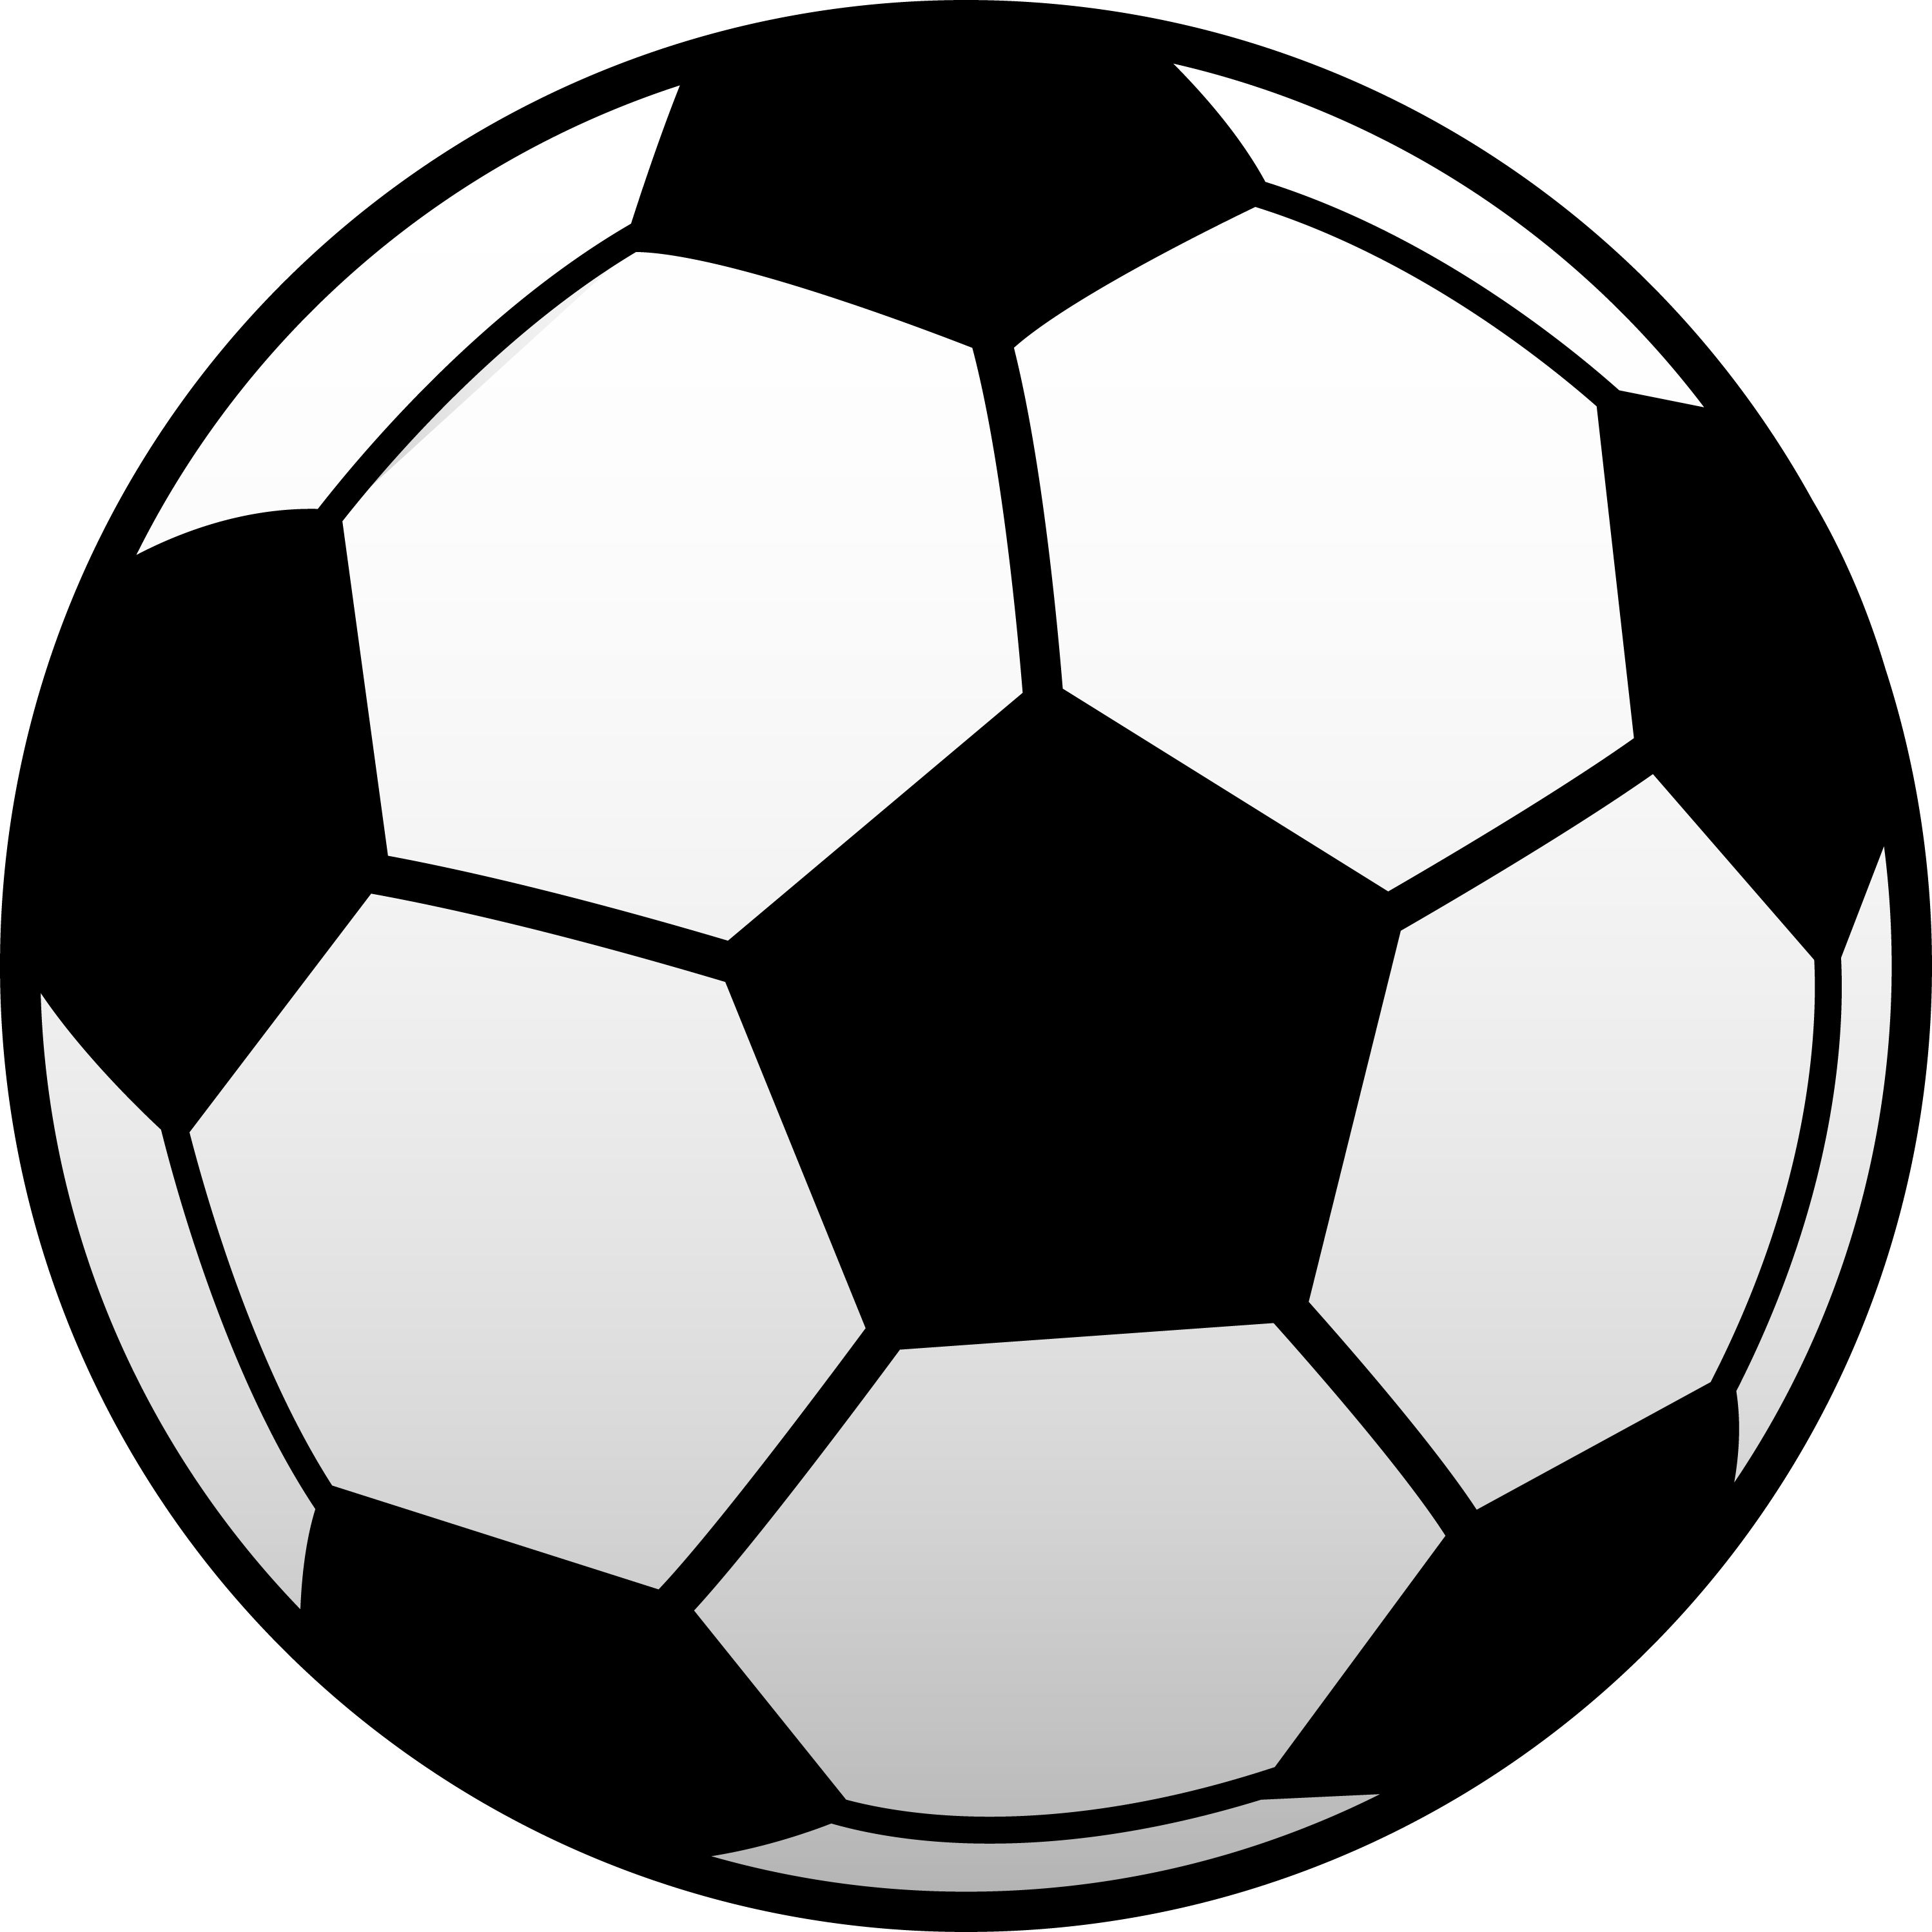 Soccer ball clipart free images 2